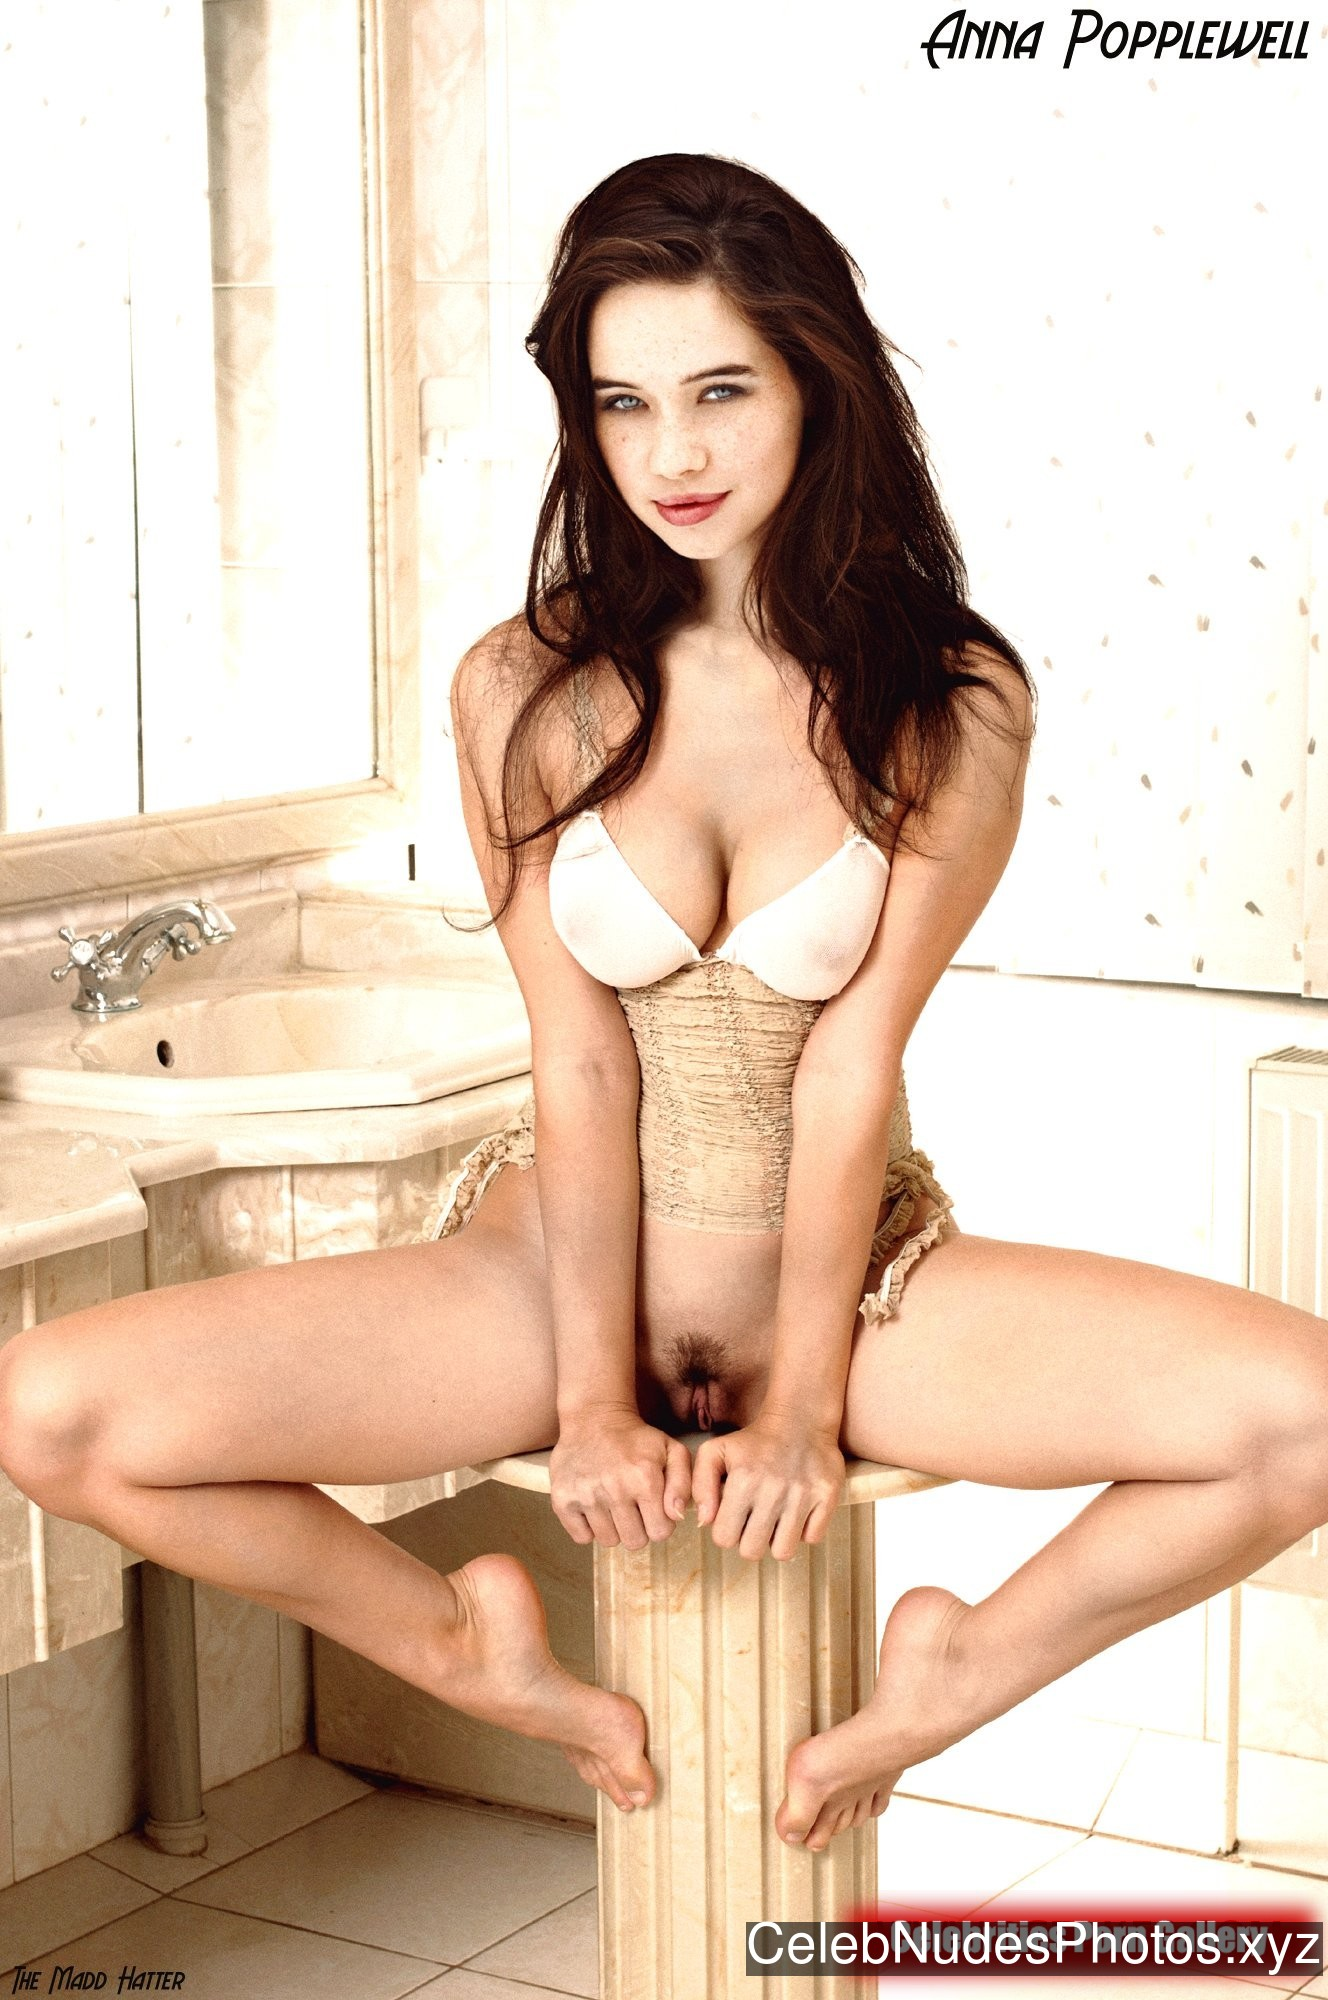 Anna Popplewell Celebrities Naked sexy 1